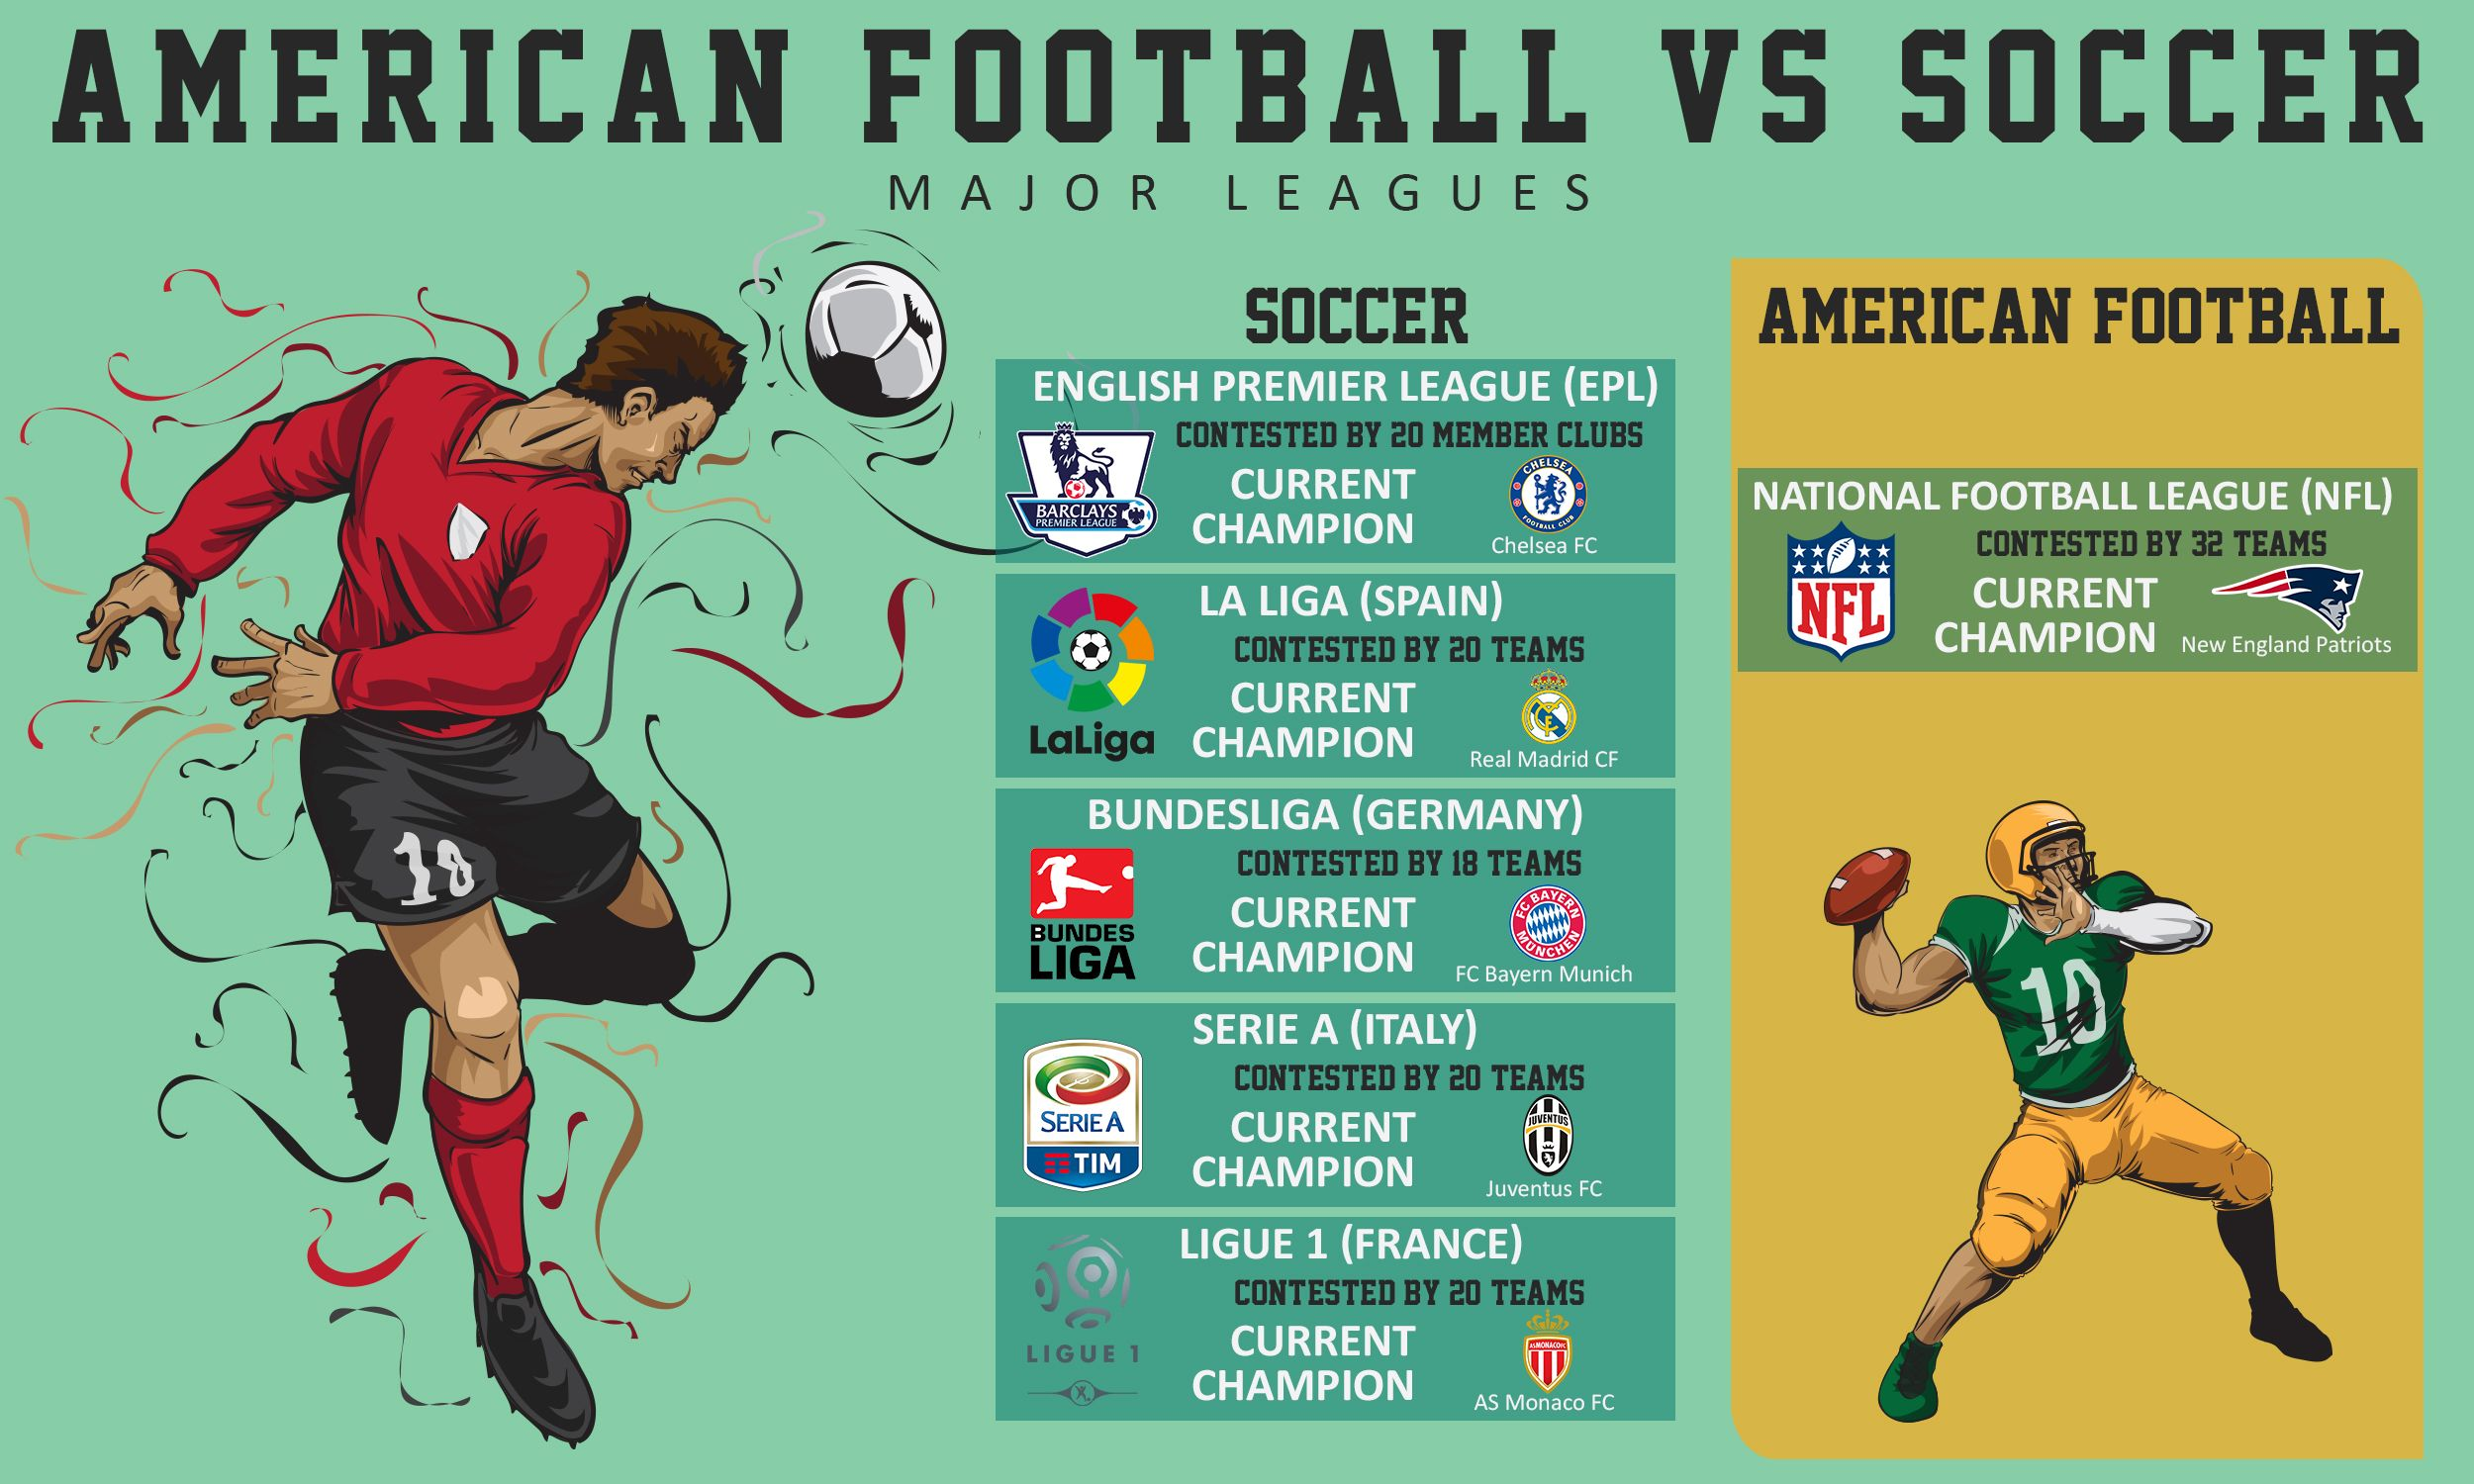 American Football Vs Soccer Major Leagues American Football And Soccer Share Very Little In Common American Football English Premier League Football